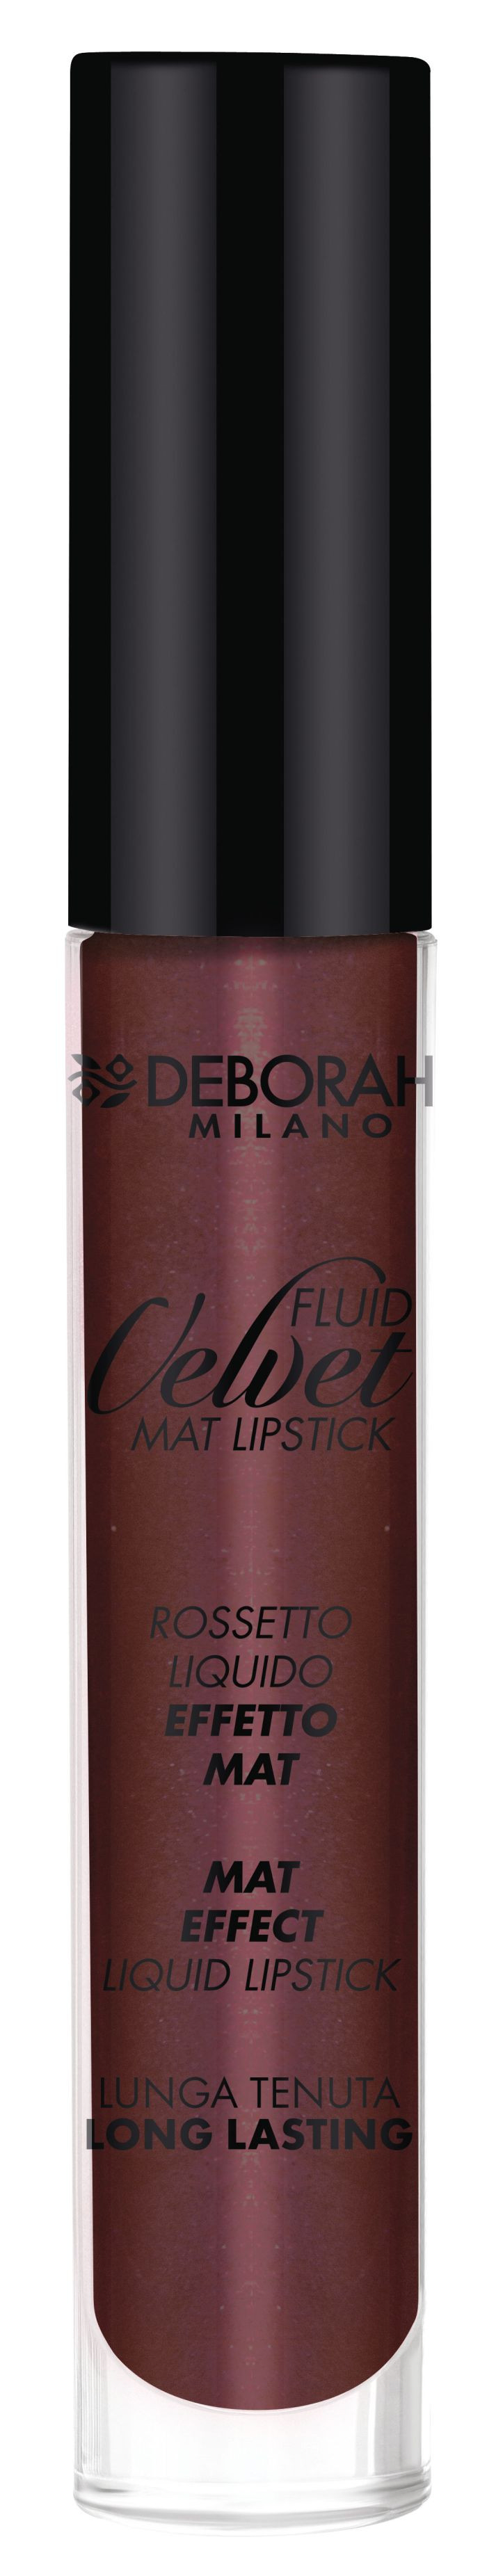 Deborah Milano Fluid Velvet Metal in Plum